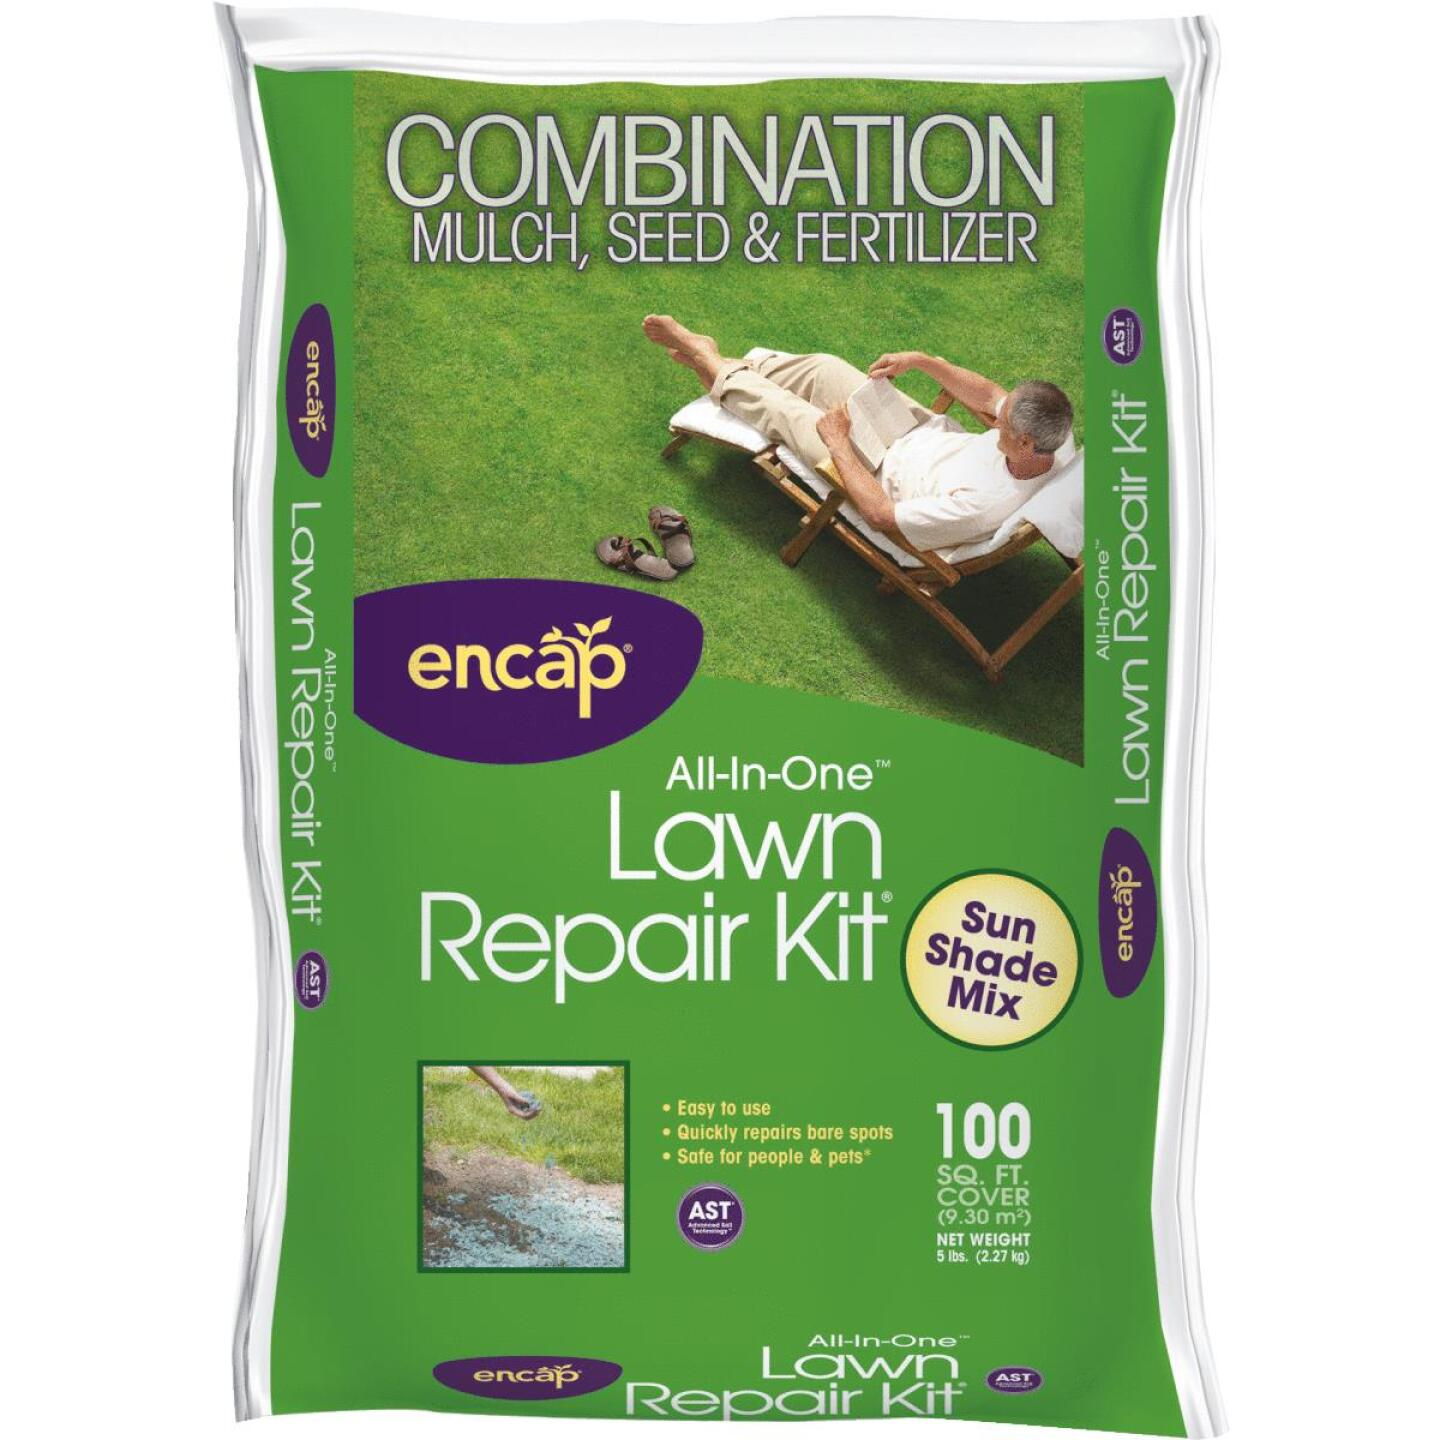 Encap 5 Lb. 100 Sq. Ft. Coverage Sun & Shade Grass Patch & Repair Image 1